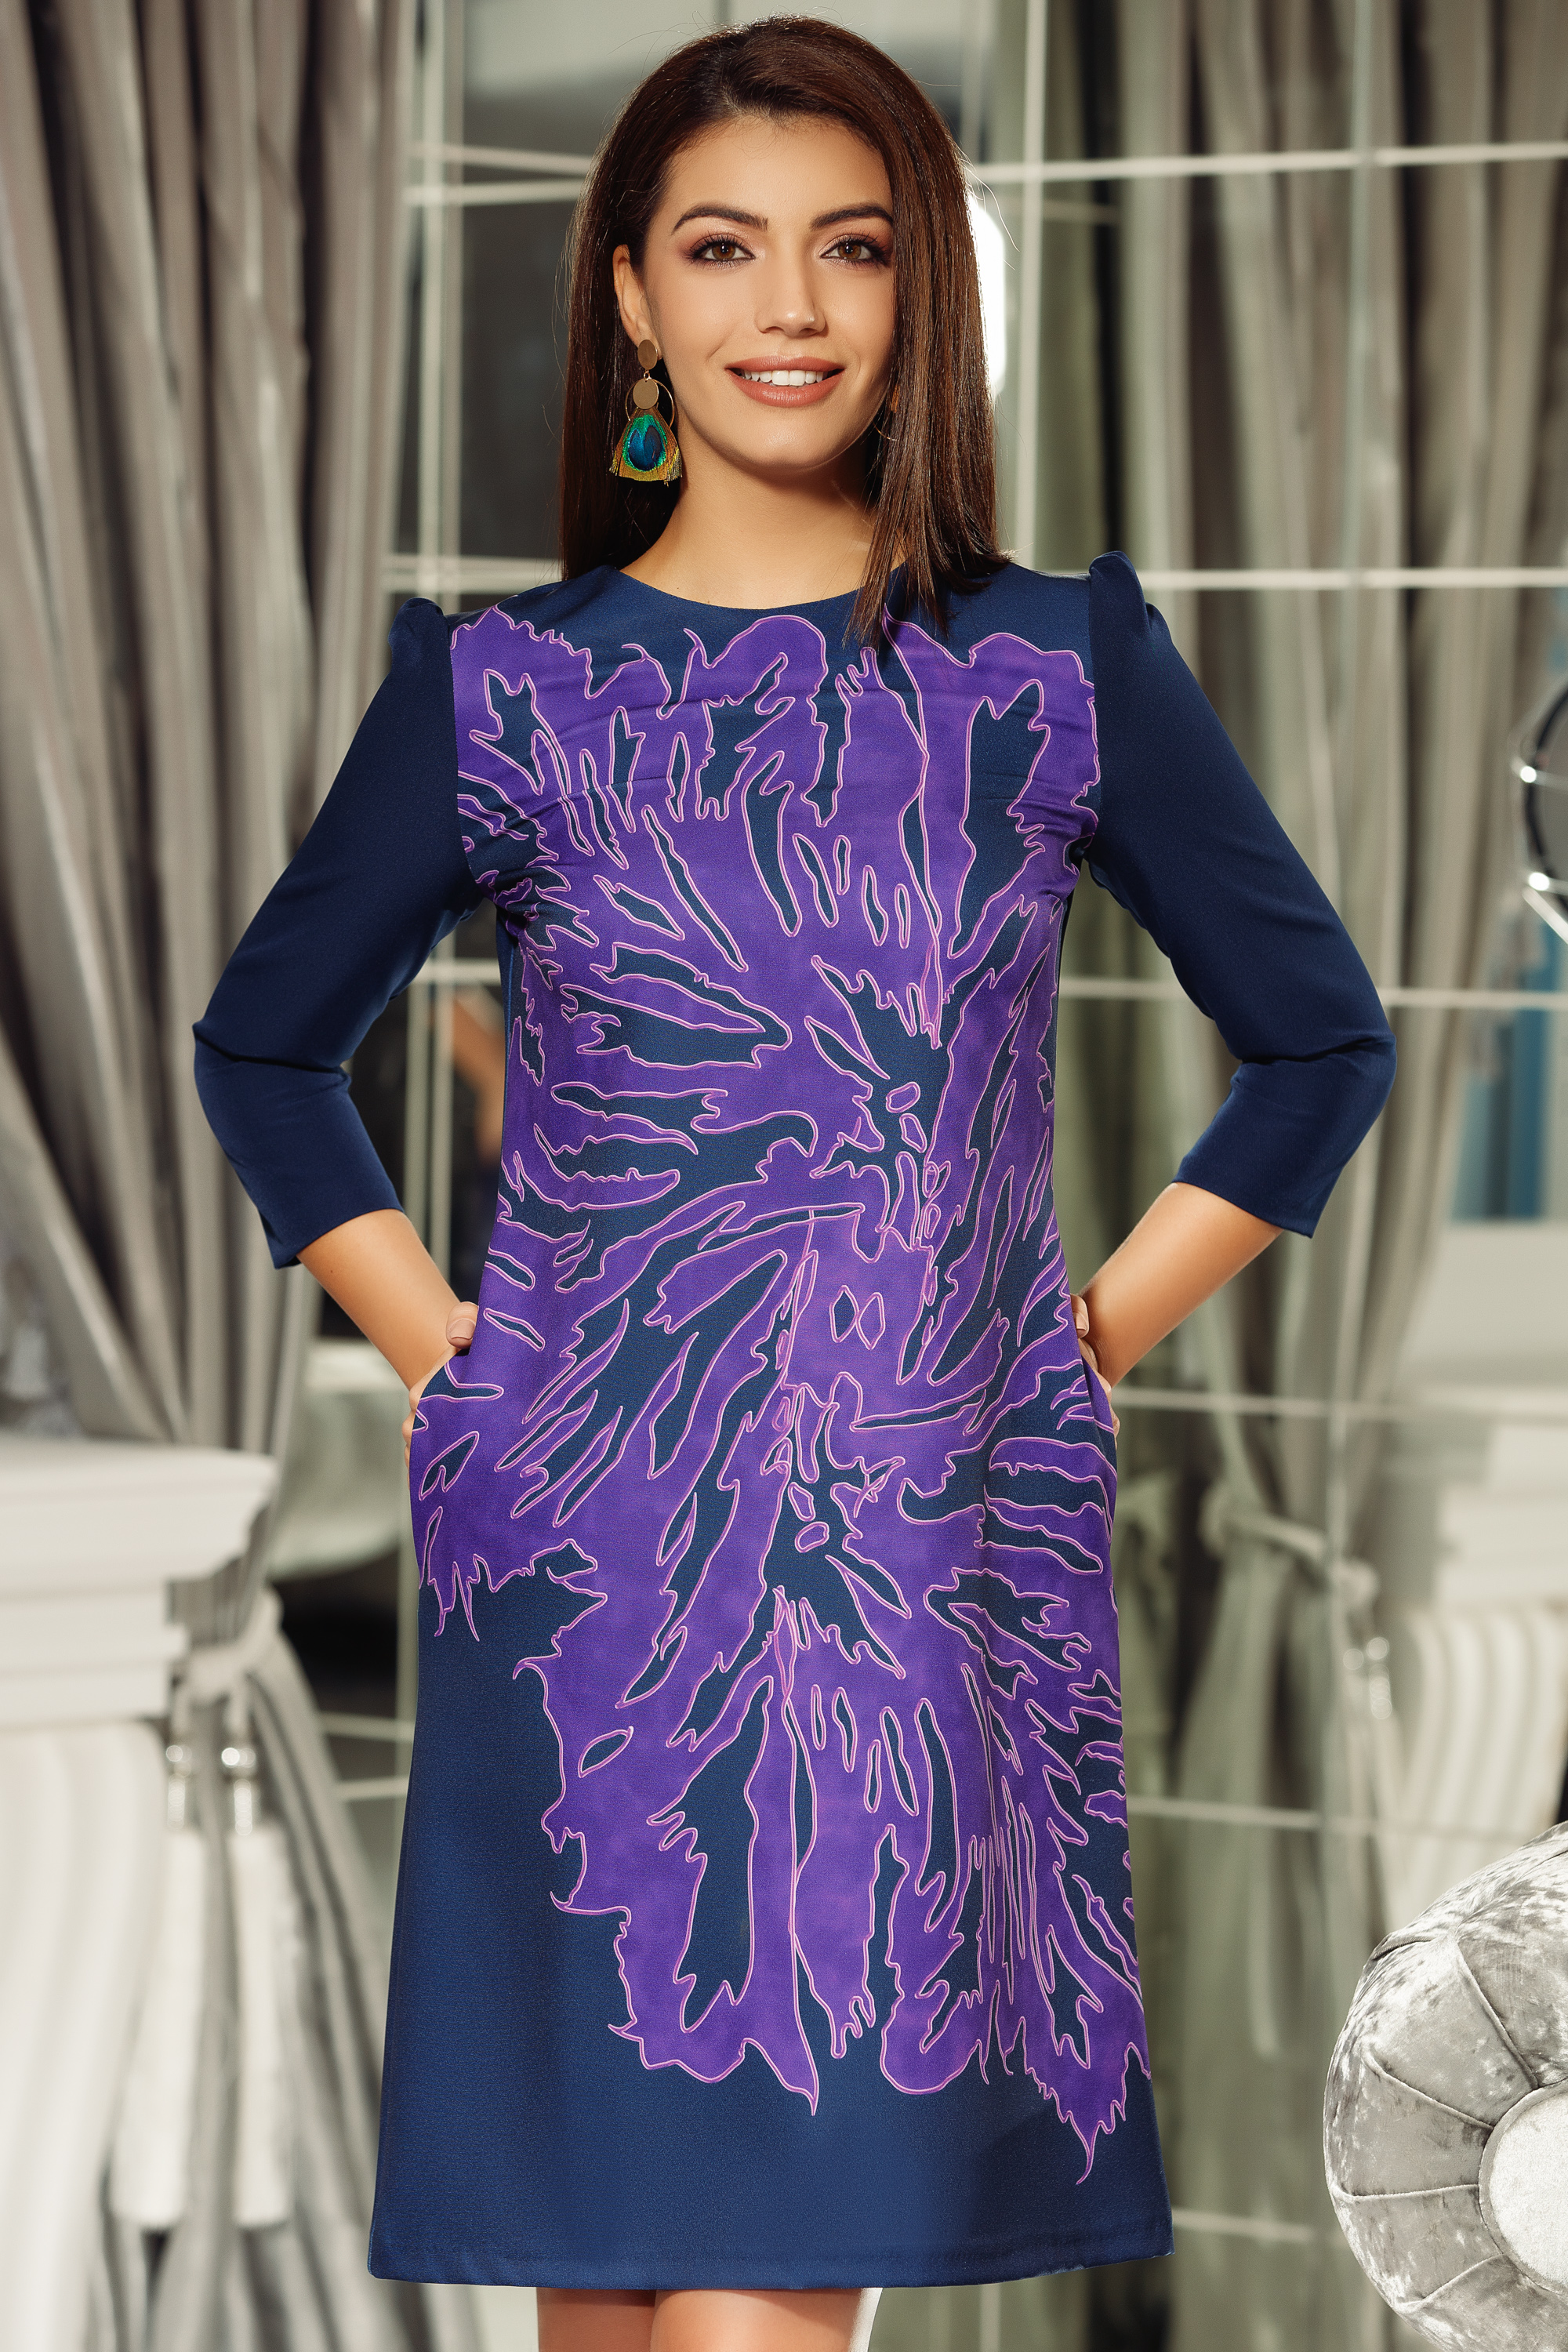 Fofy purple office a-line dress slightly elastic fabric with 3/4 sleeves